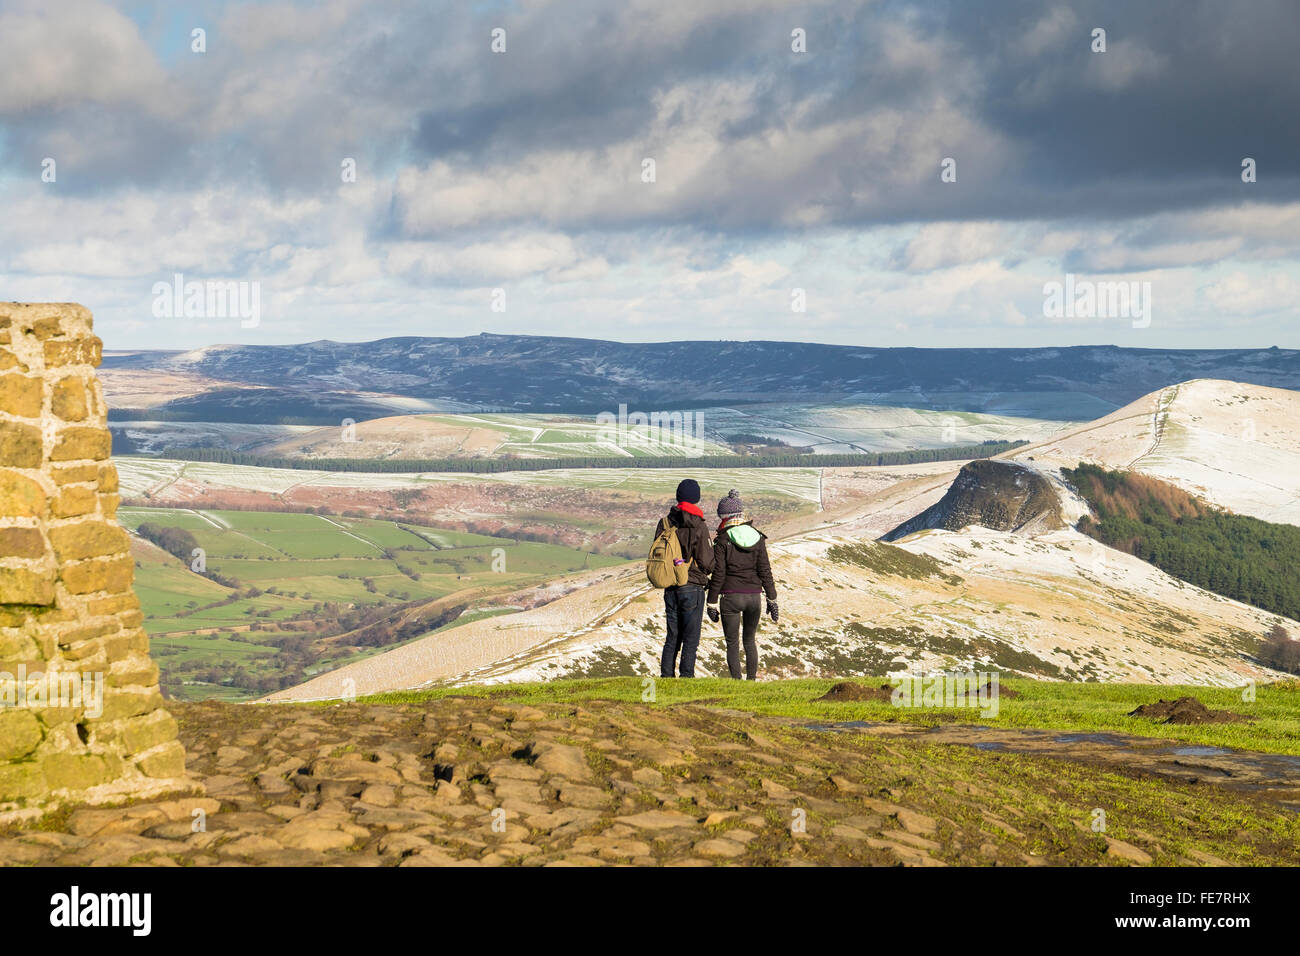 Walkers at the Trig point on the top of Mam Tor on a bright winter day. Stock Photo